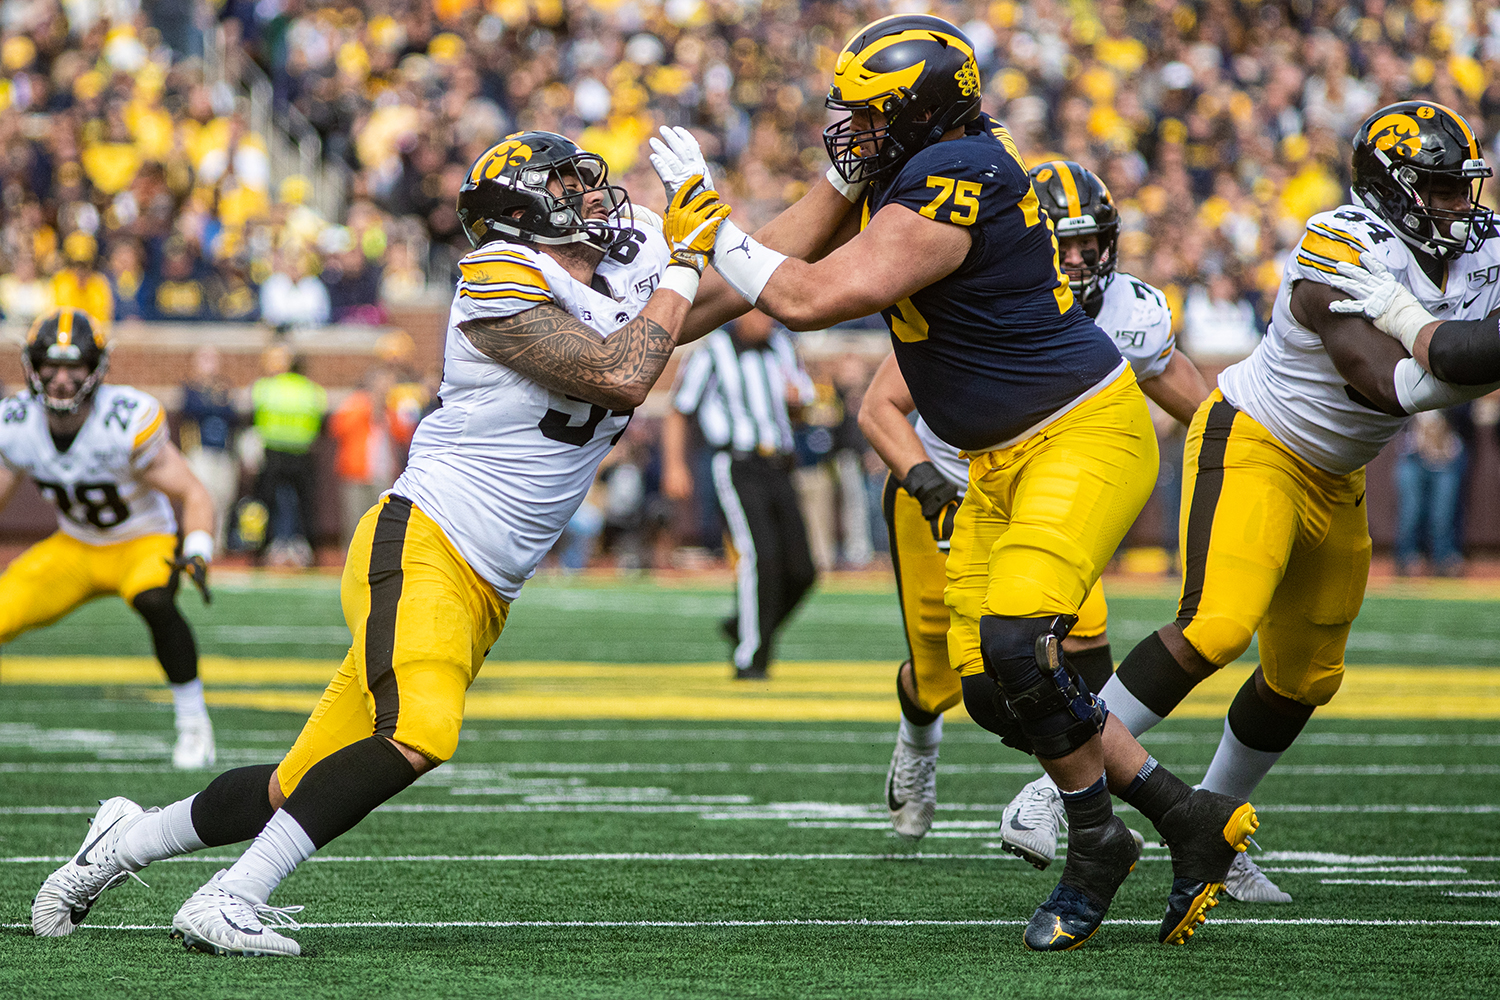 Iowa defensive end AJ Epenesa pursues the quarterback during a football game between Iowa and Michigan in Ann Arbor on Saturday, October 5, 2019. The Wolverines celebrated homecoming and defeated the Hawkeyes, 10-3.